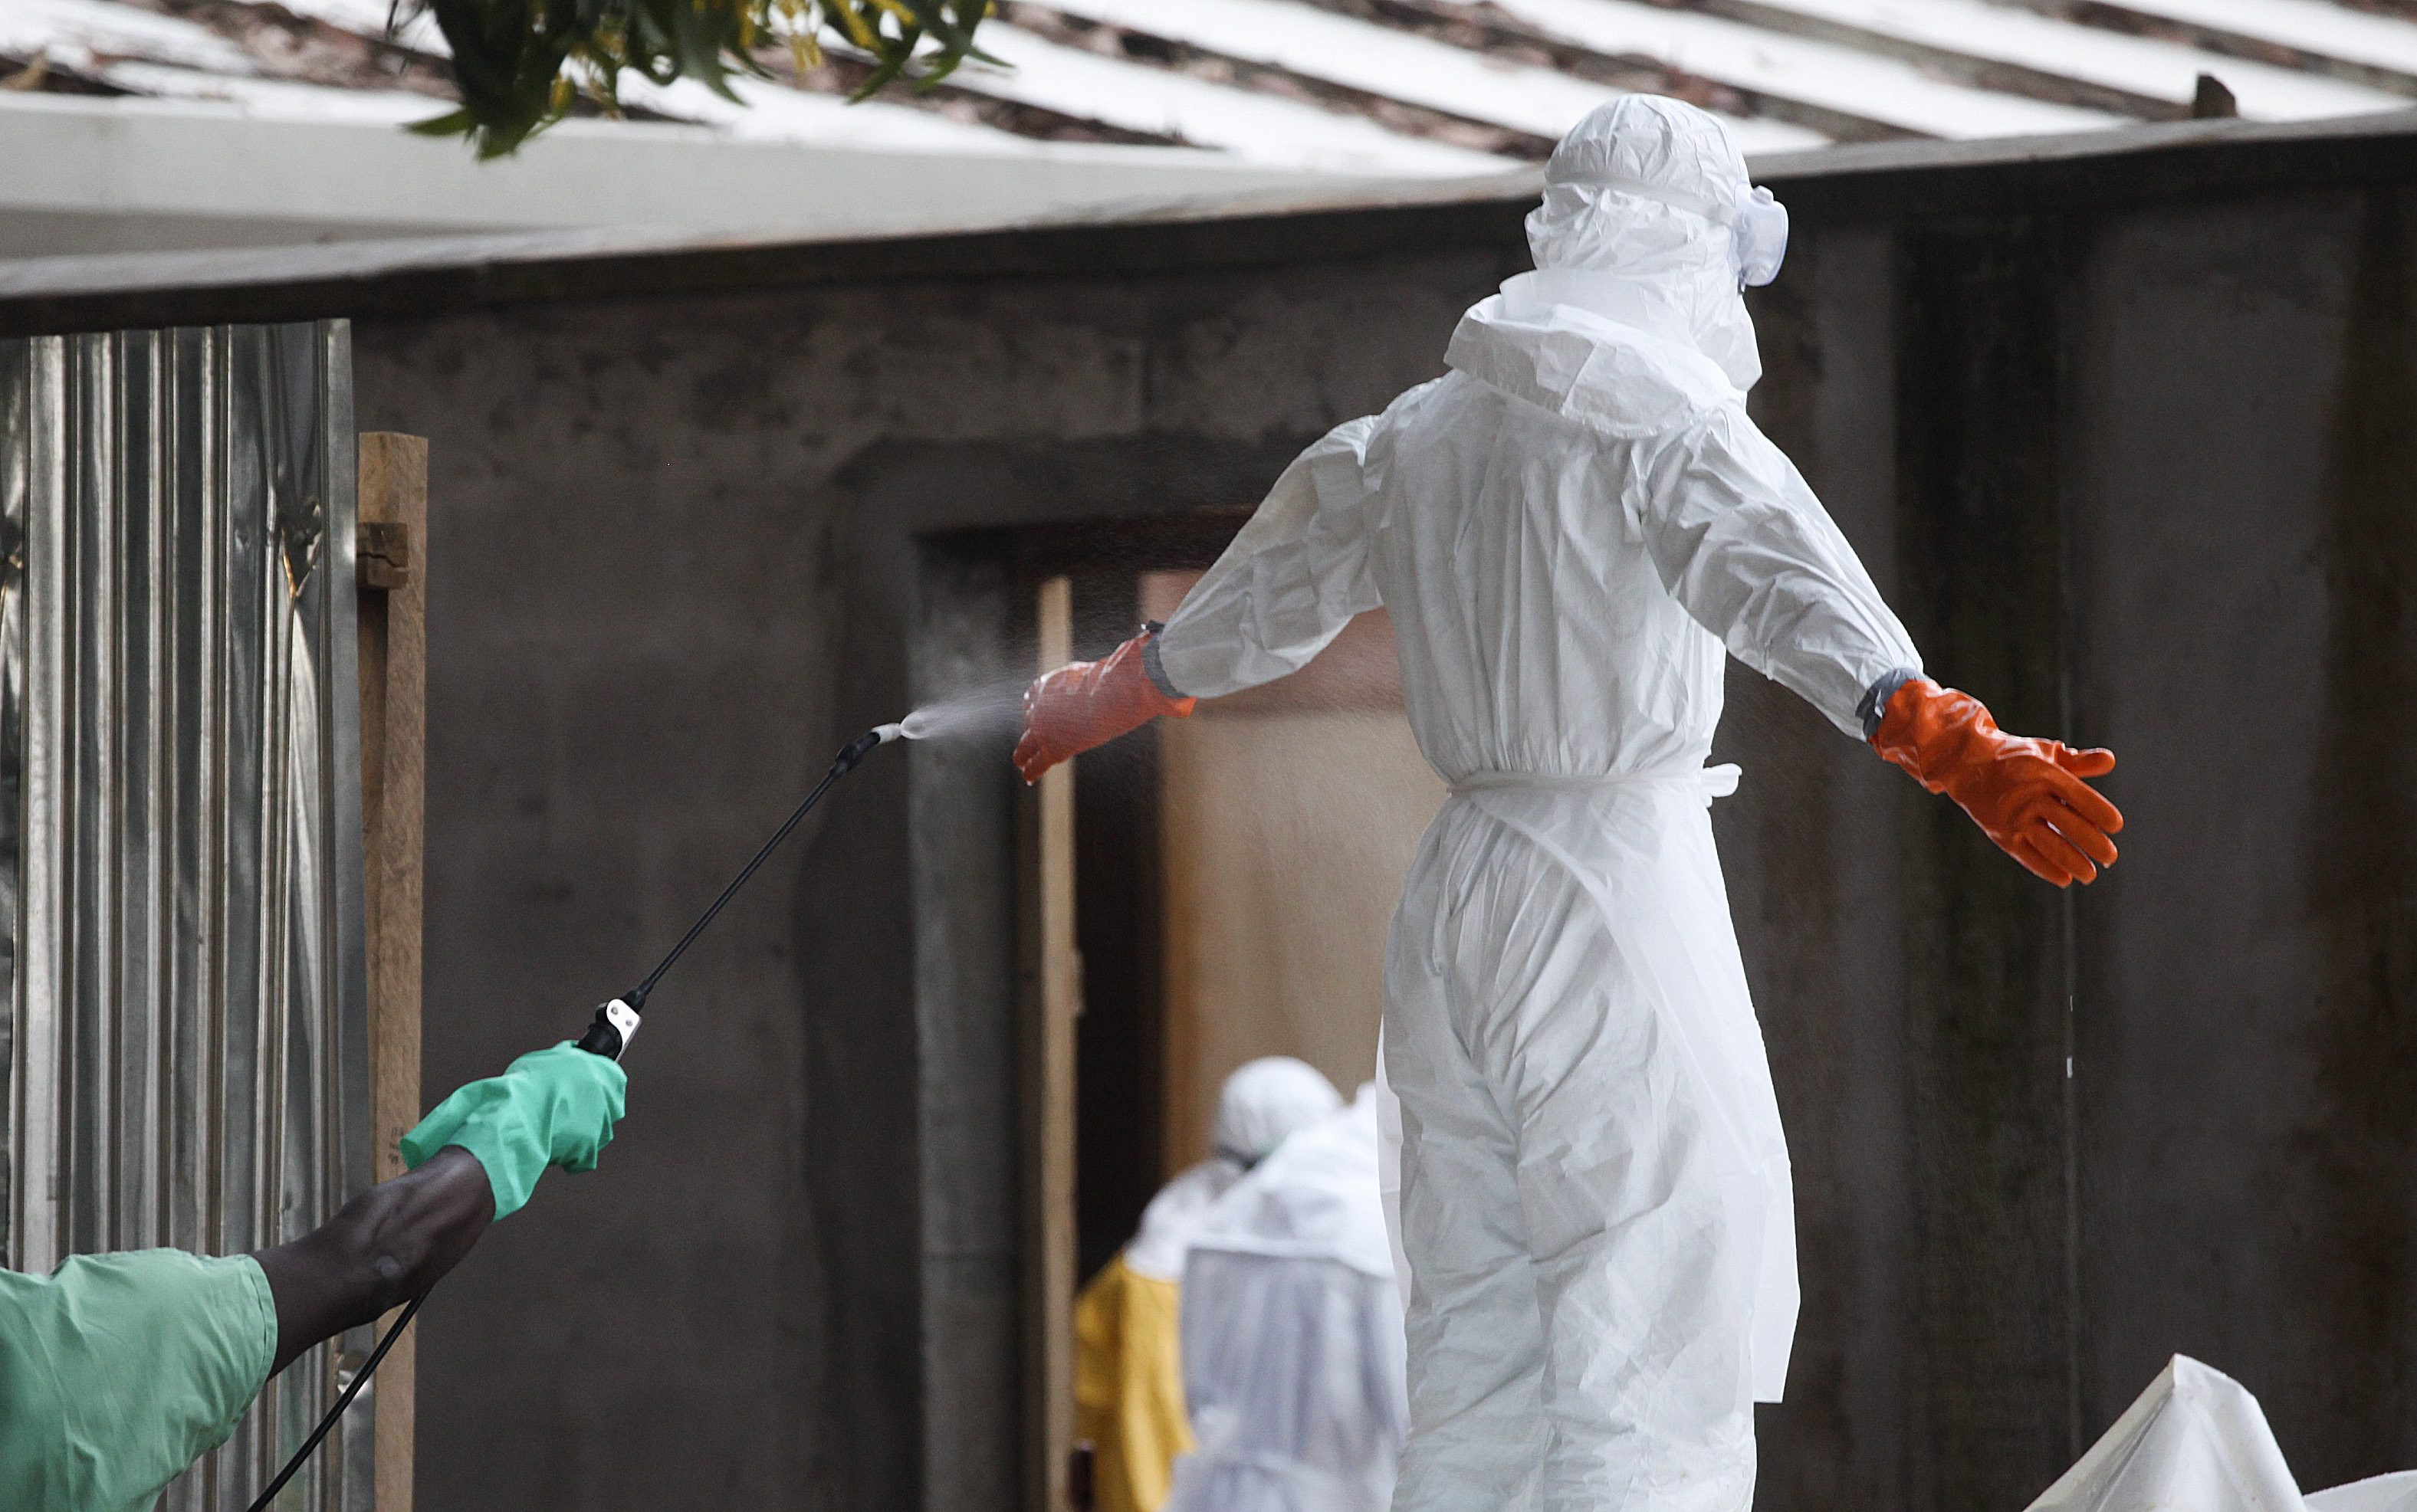 epa04339981 A photograph made available 03 August 2014 shows a Liberian nurse in protective clothing being sprayed with disinfectant after preparing several bodies of victims of Ebola for burial in the isolation unit of